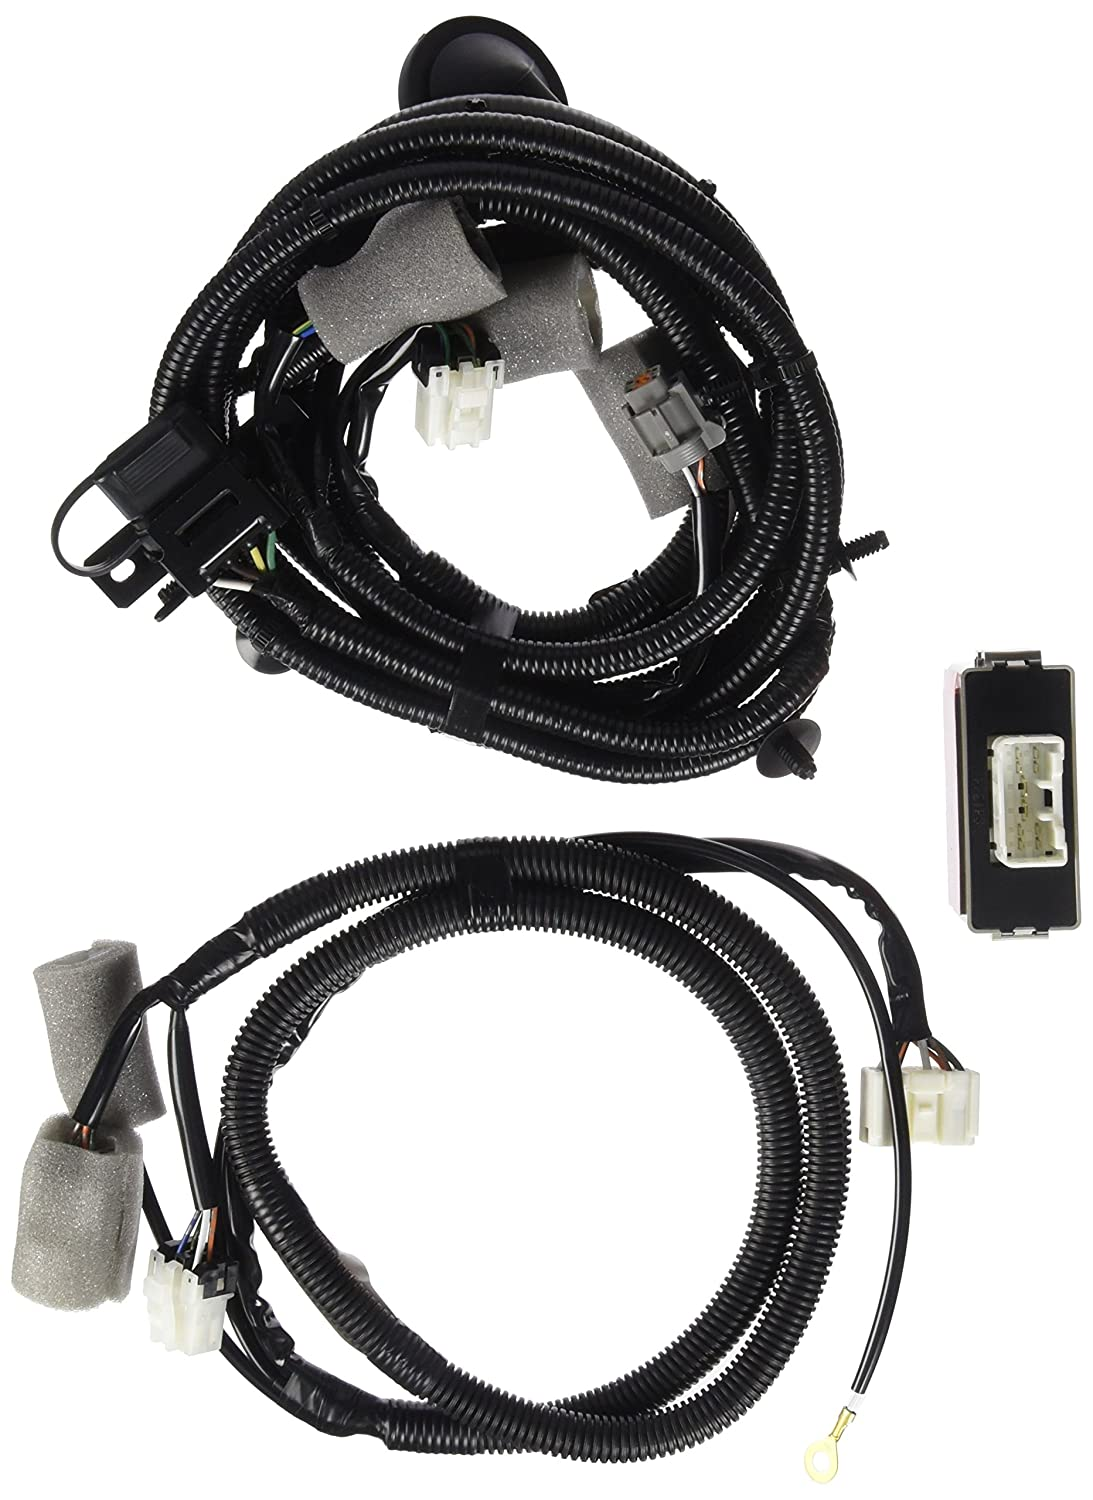 Nissan Genuine Accessories 999T8-NW000 Tow Harness Genuine Nissan Accessories